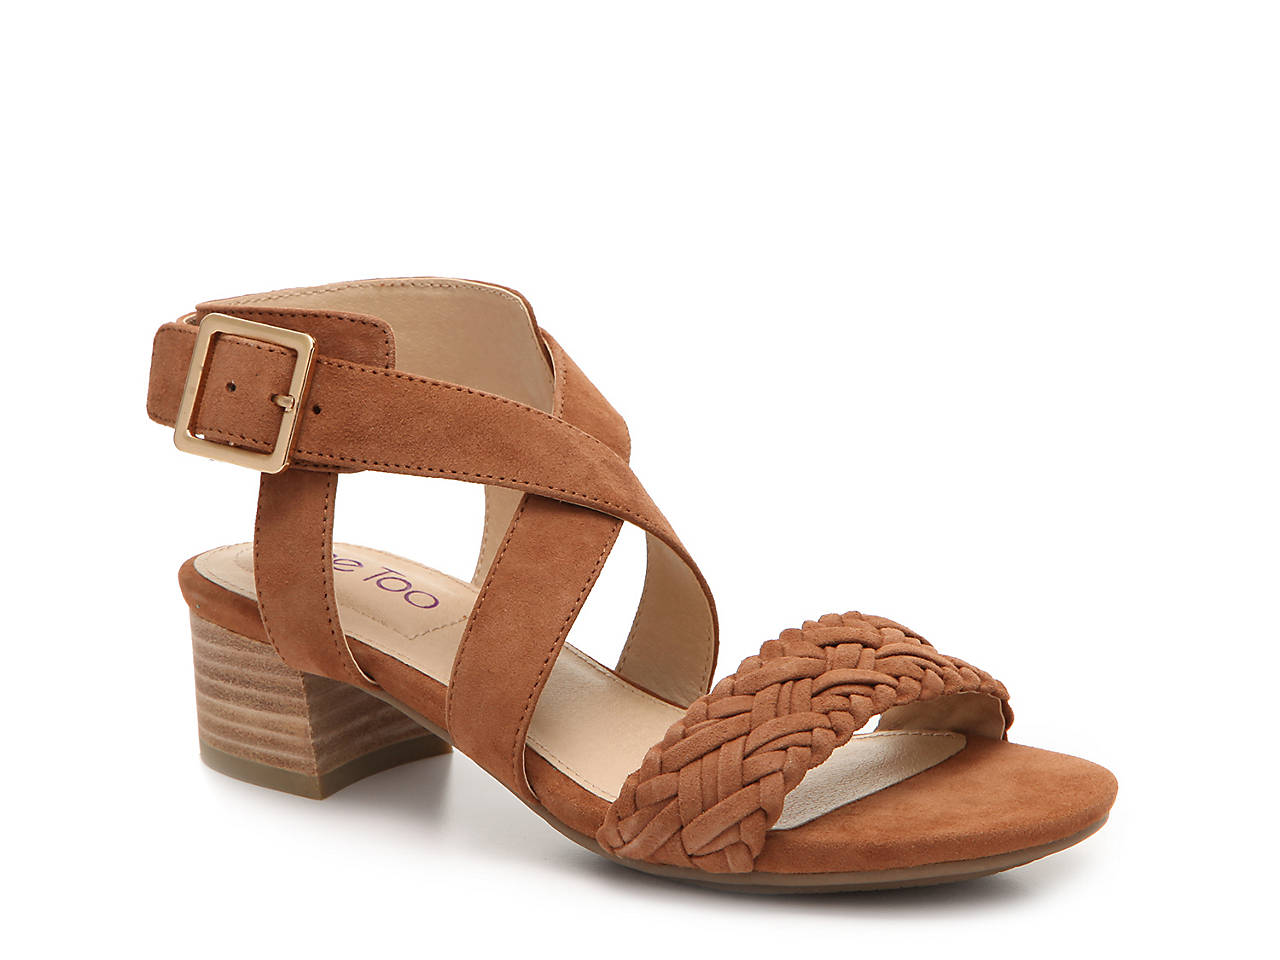 bf8aabe30 Me Too Marsel Sandal Women s Shoes